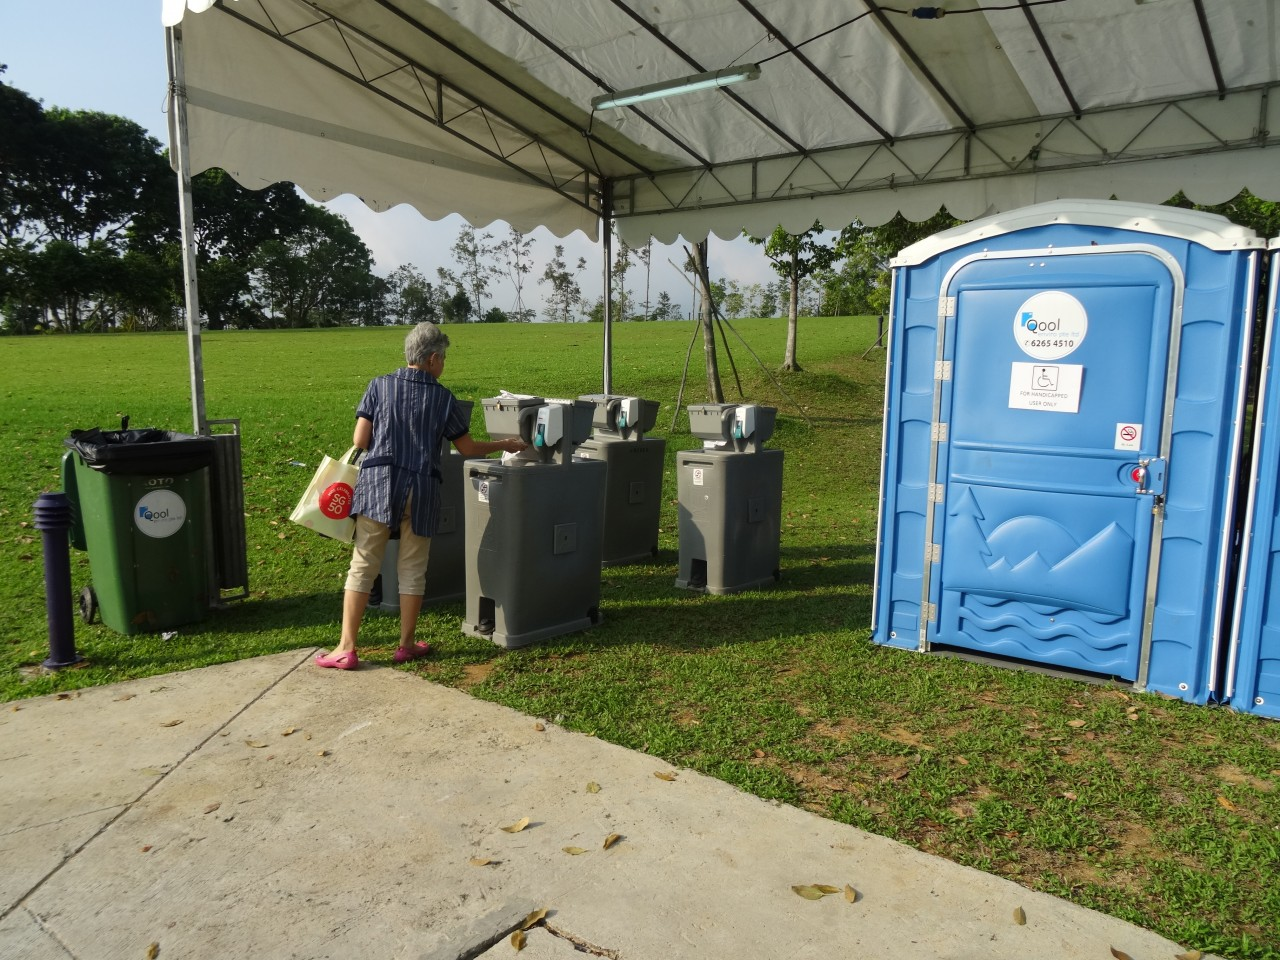 qool enviro portable toilet in moe celebrate sg50 7